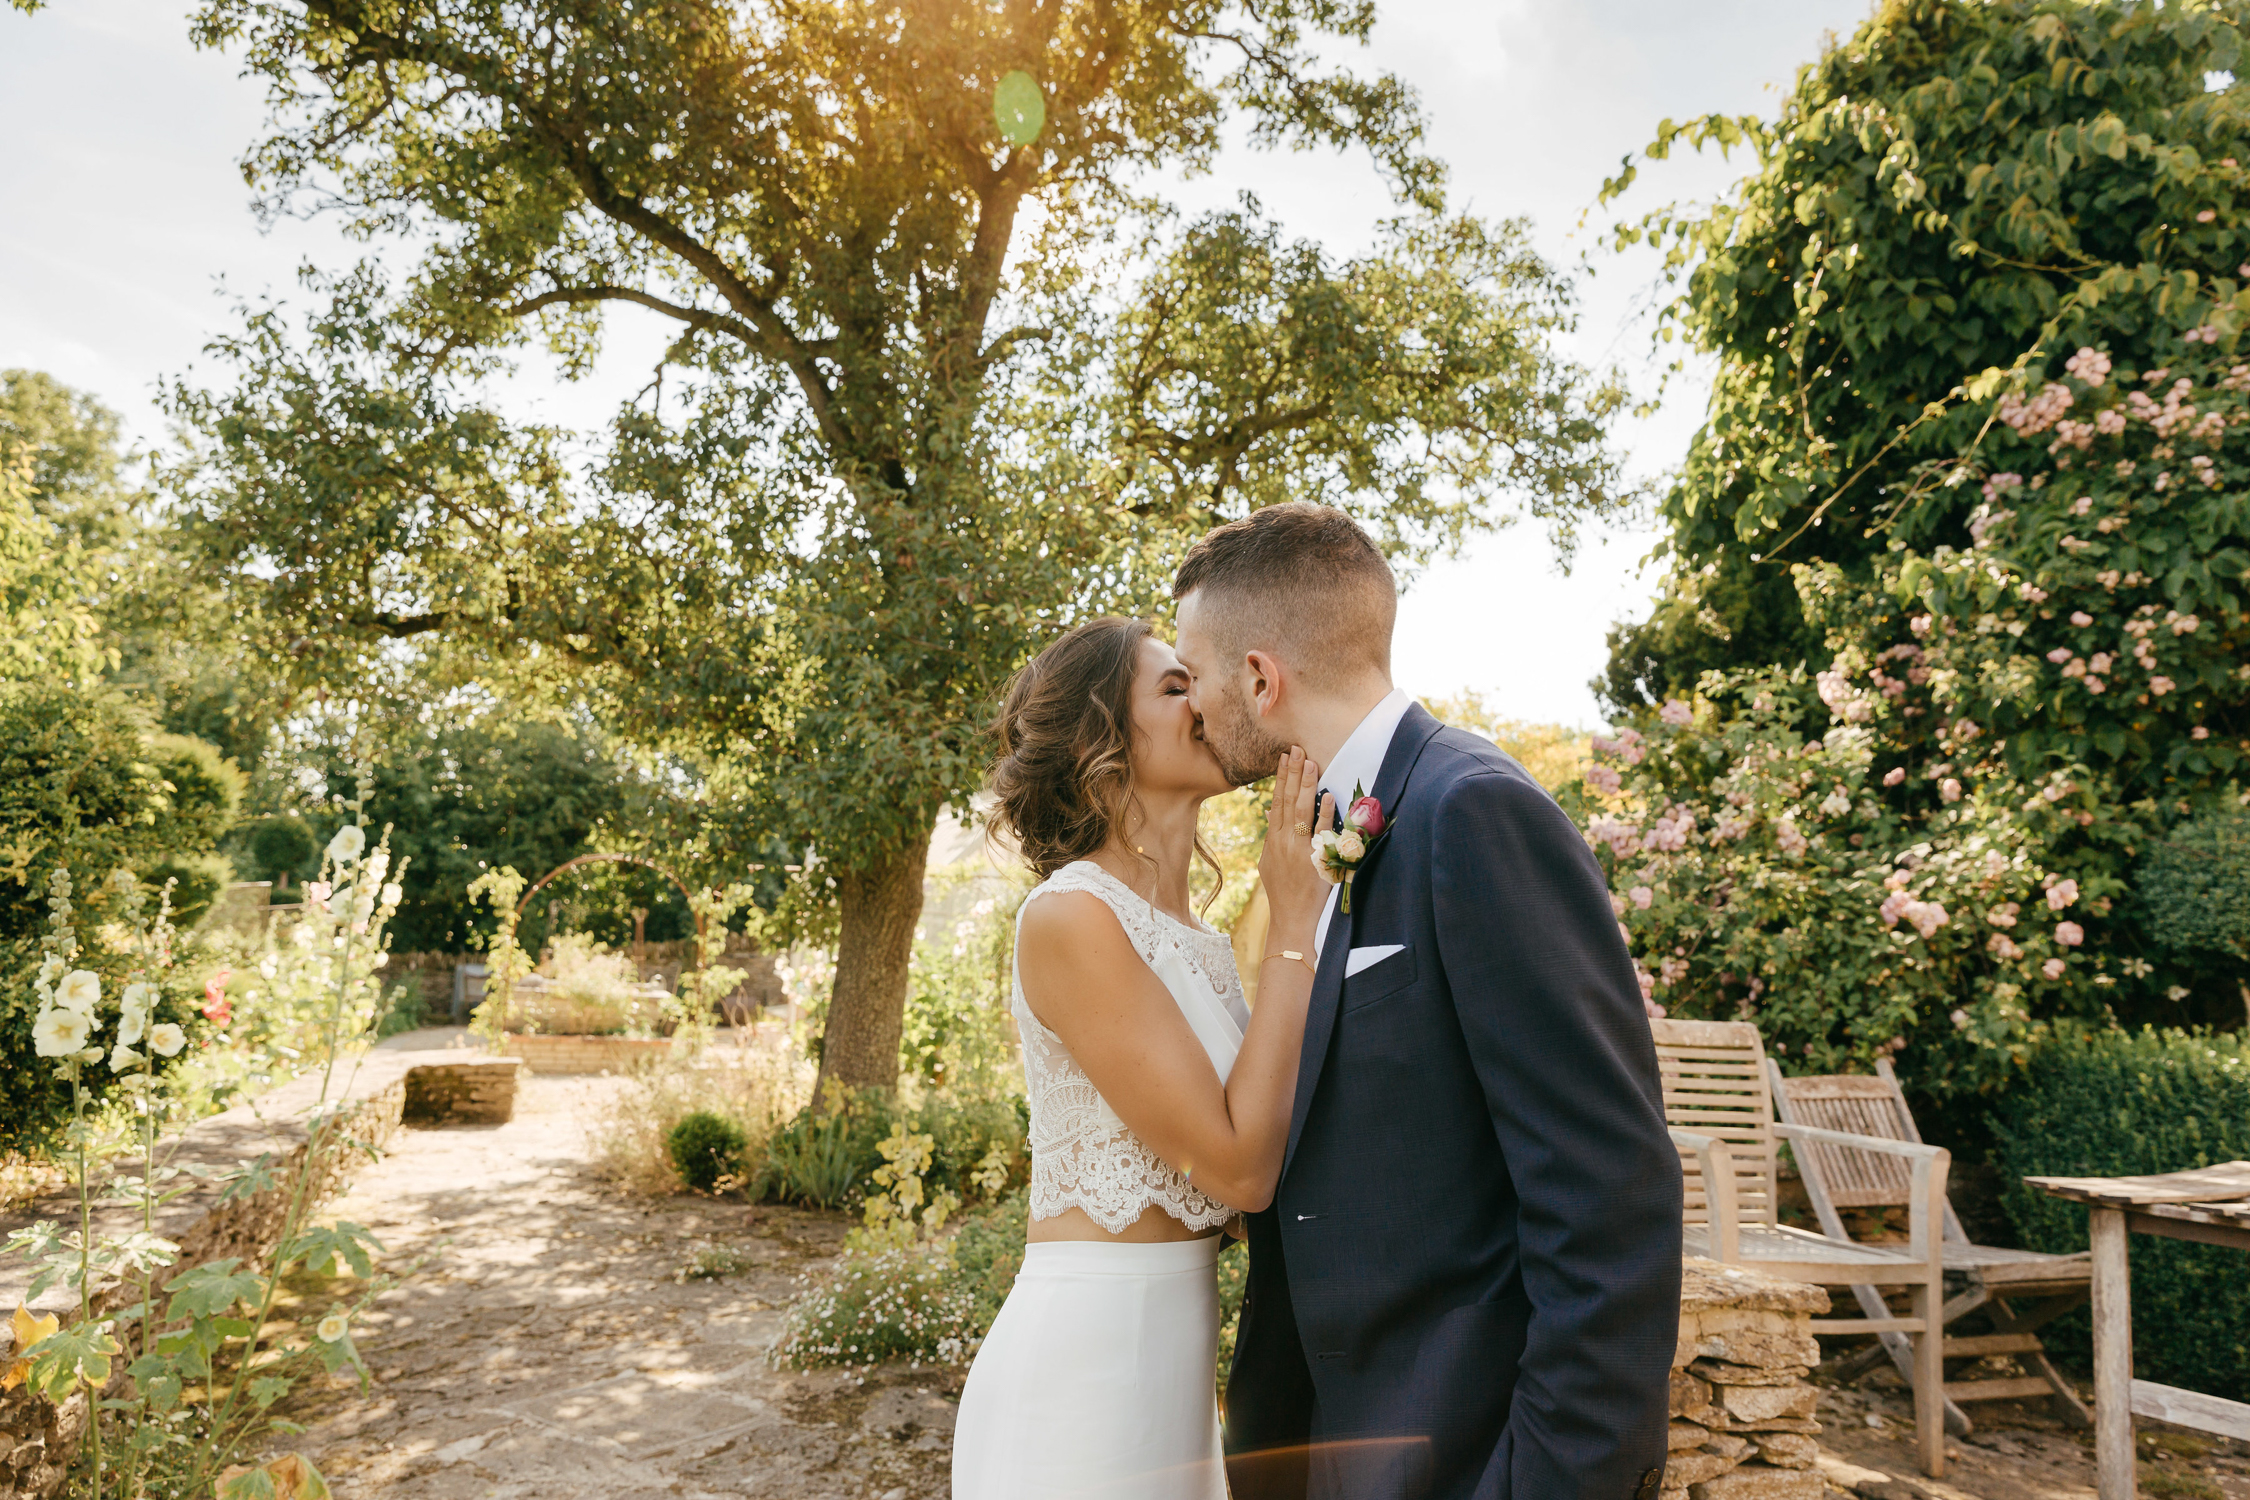 natural wedding photography at oxleaze barn summer wedding